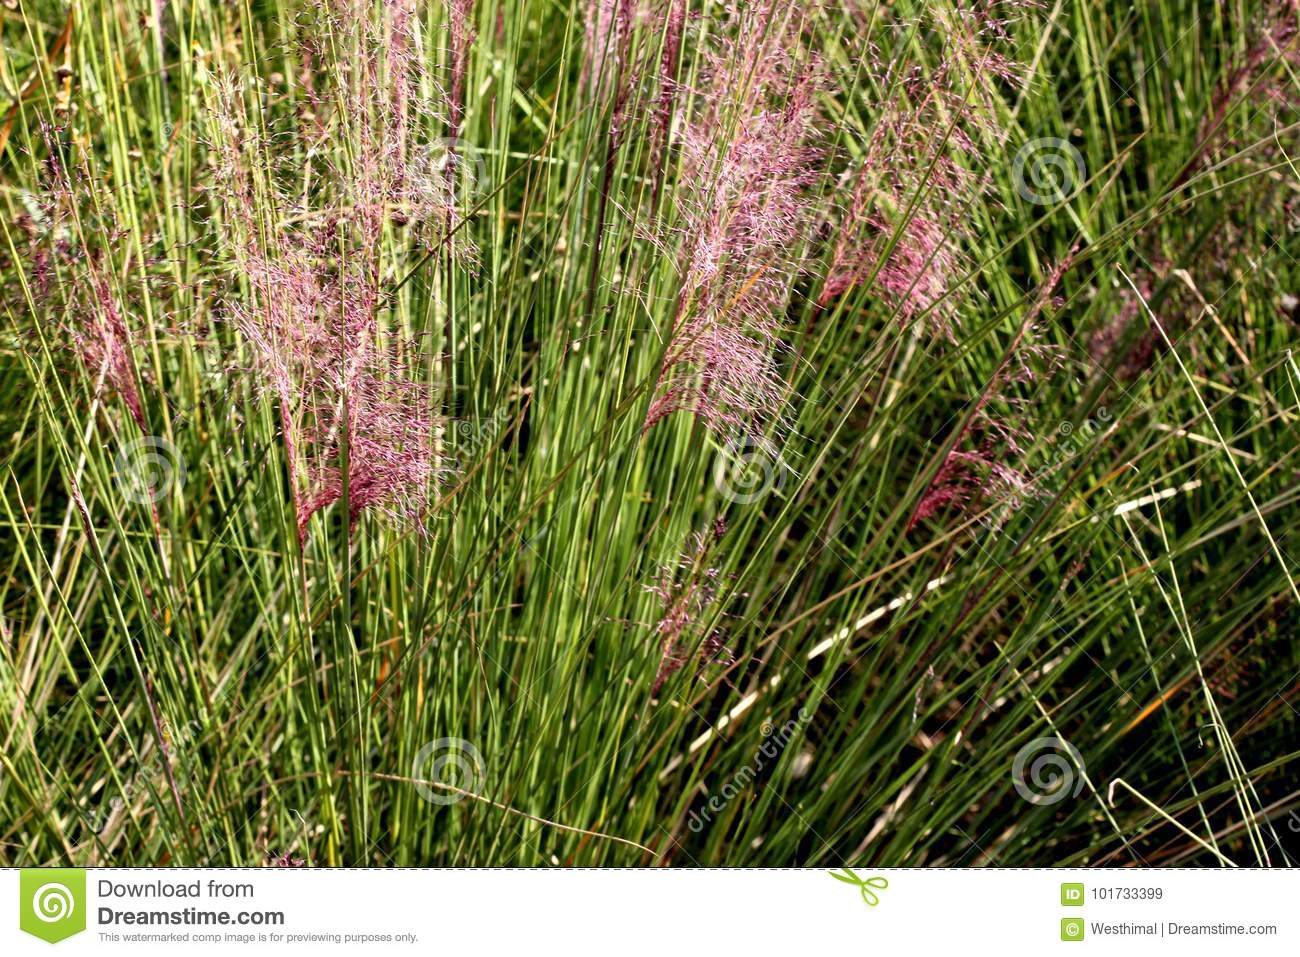 Hairawn Muhly Muhlenbergia Capillaris Stock Image Image Of Leaves